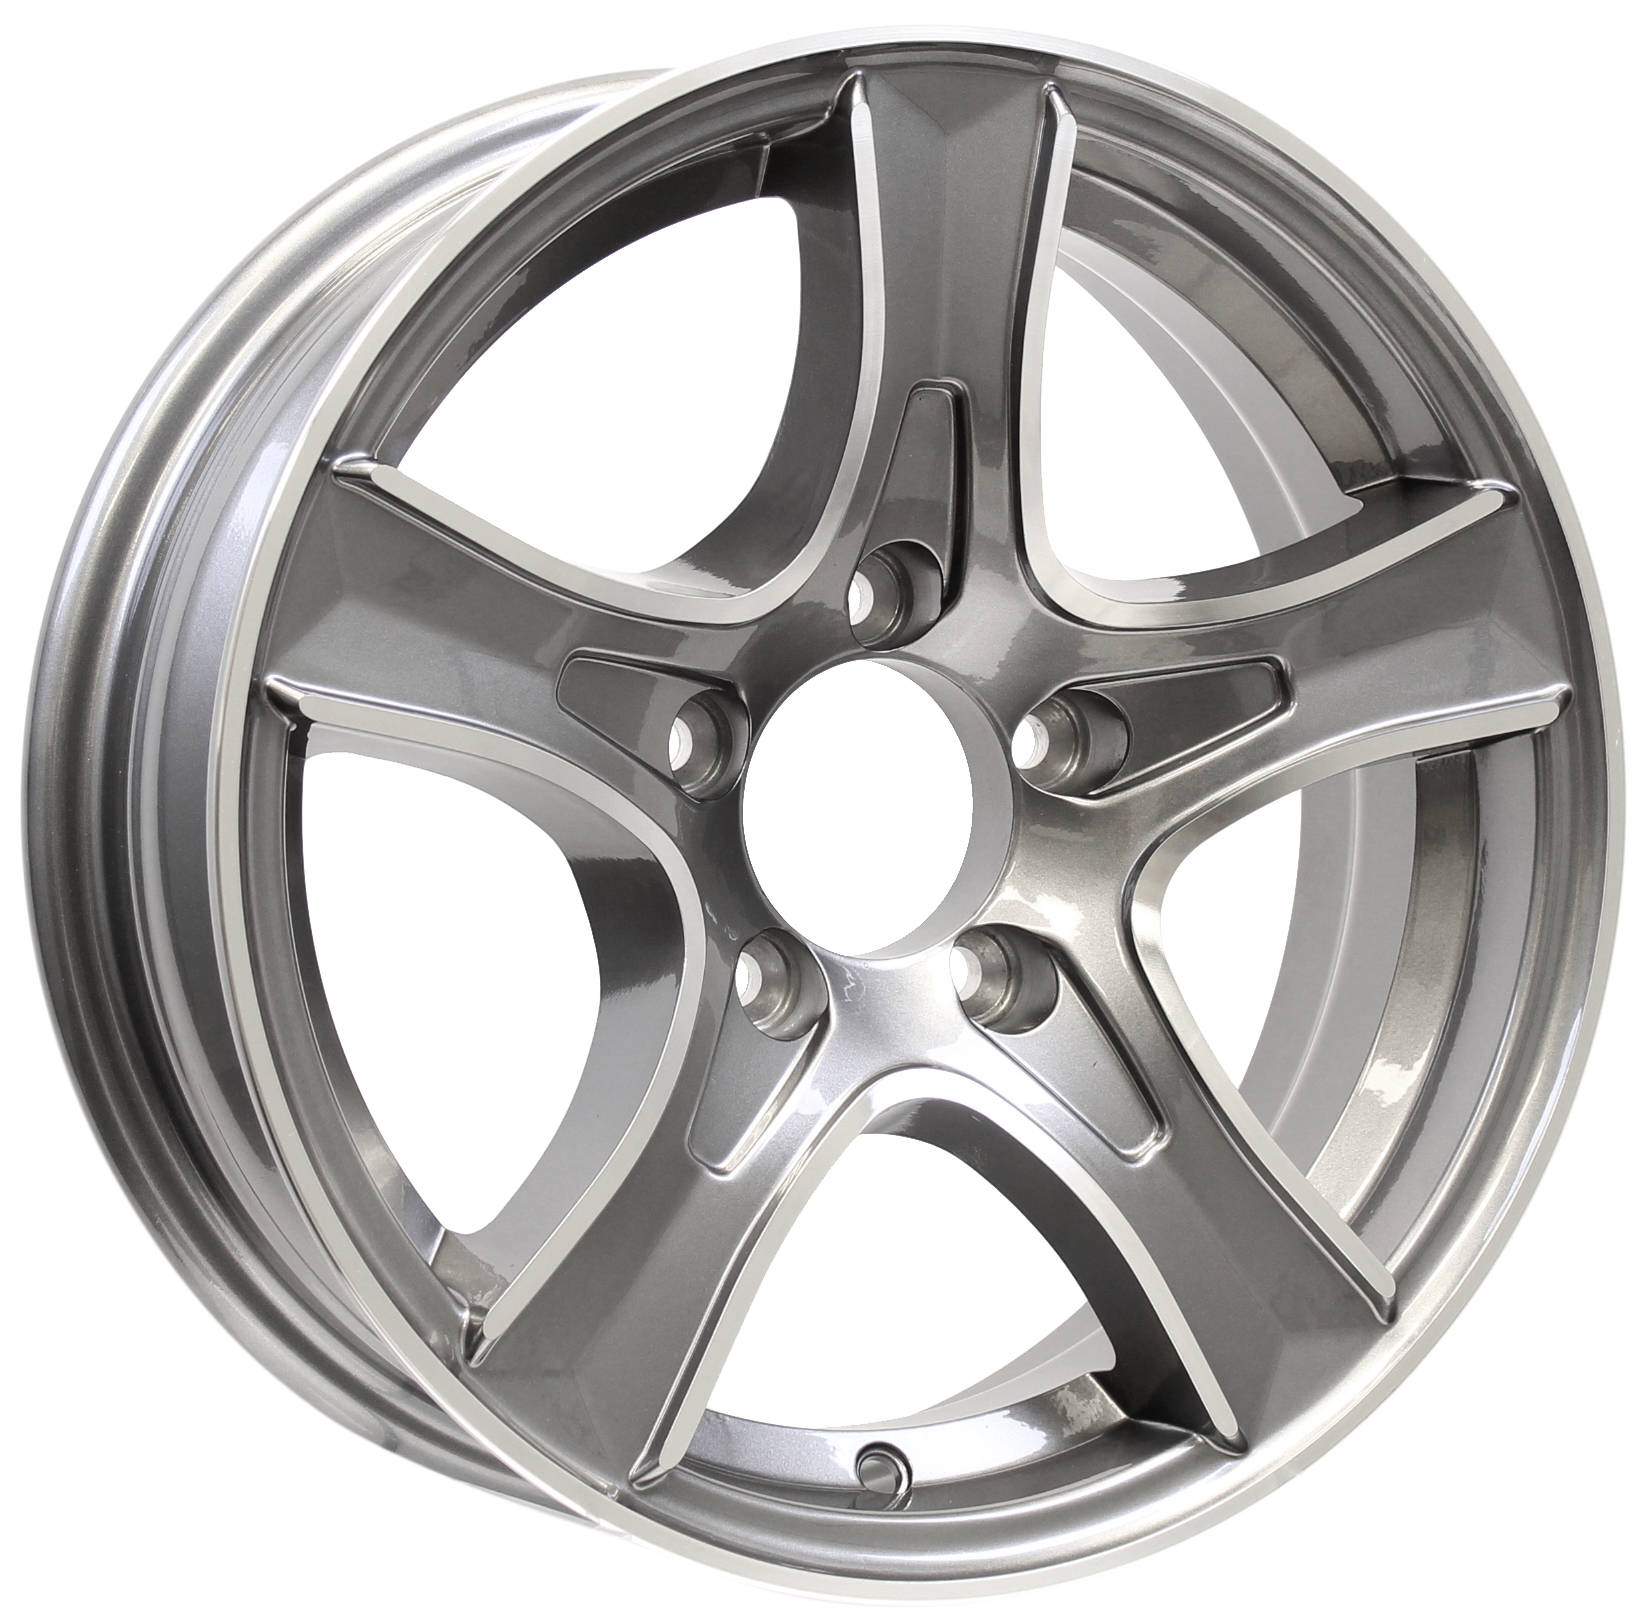 Thoroughbred- 15x5 5-4.5 Gun Metal Aluminum Trailer Wheel Image